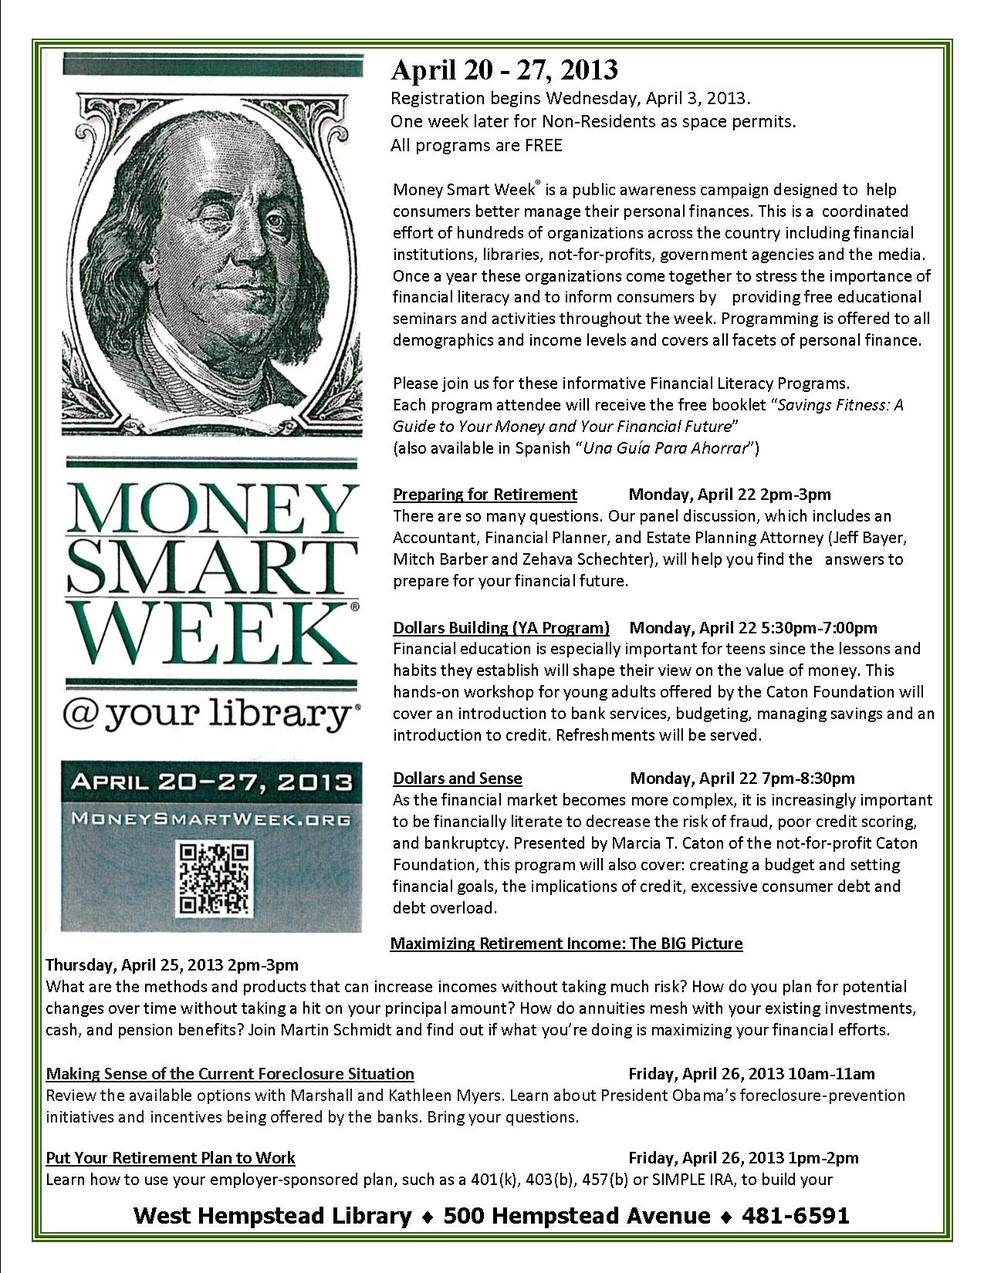 Money Smart Week@your library | Malverne, NY Patch